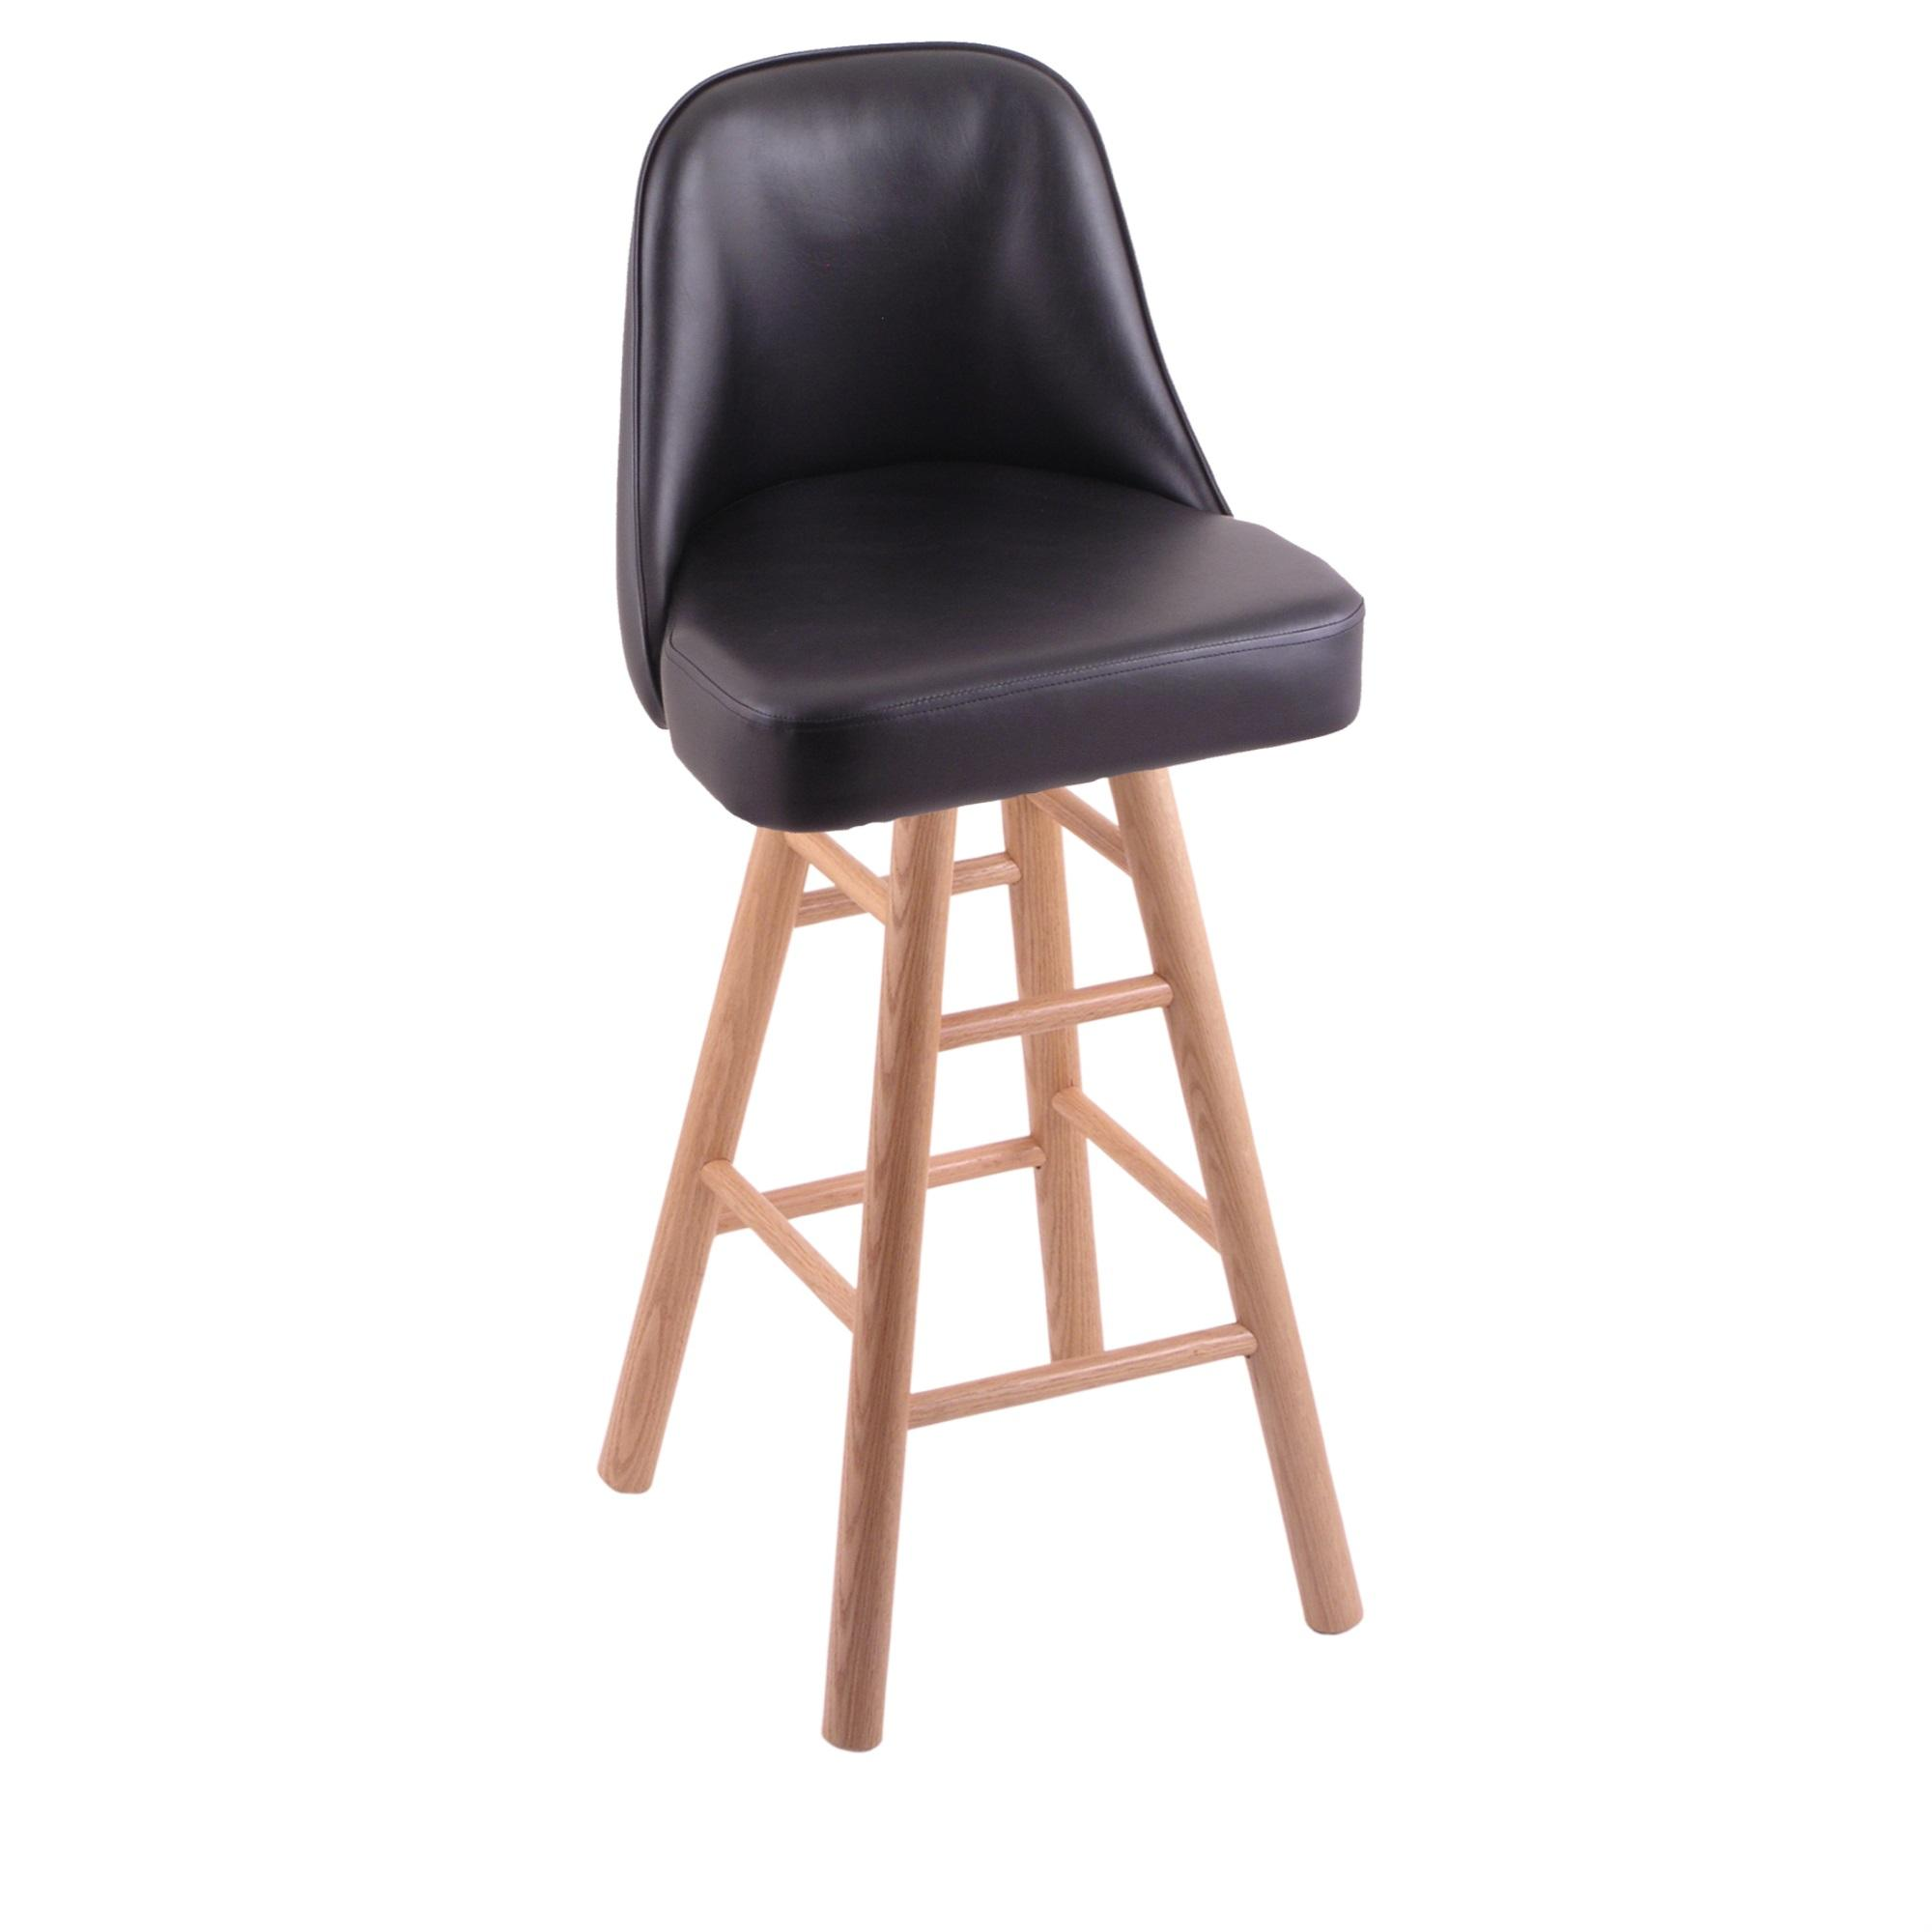 Grizzly Counter Stool with Smooth Oak Legs, Natural Finish, and 360 Swivel